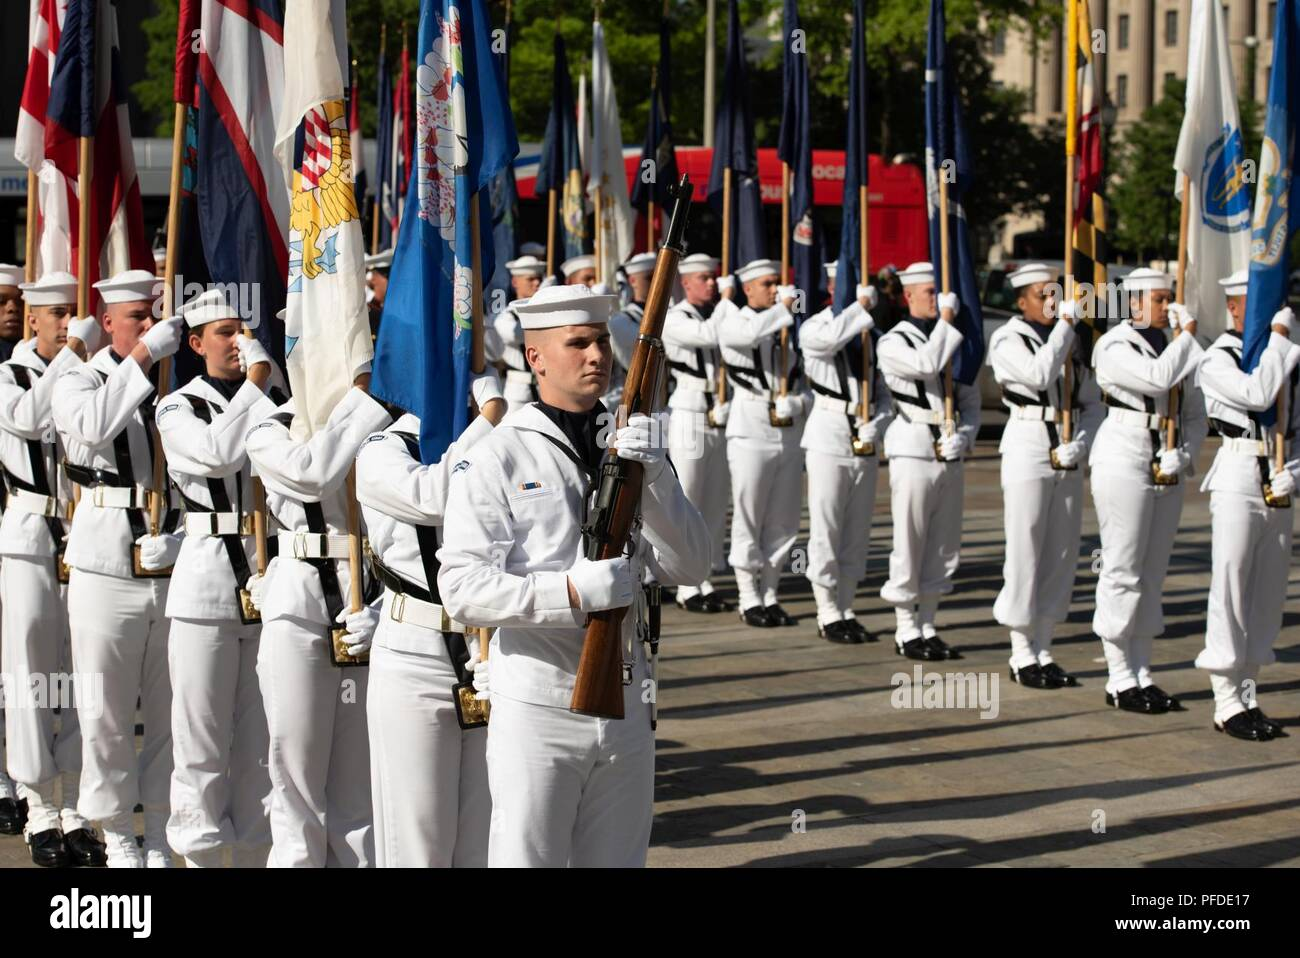 WASHINGTON (June 5, 2018) Members of the U.S. Navy Ceremonial guard march onto the U.S. Navy Memorial in Washington, D.C., during the commemoration of the 76th anniversary of the Battle of Midway. The Battle of Midway began on June 4 in 1942 and stands as one of the U.S. Navy's most historically significant naval battles. Fought on the high seas of the Pacific more than half a century ago, this battle altered the course of the war in the Pacific and thereby shaped the outcome of world events. - Stock Image